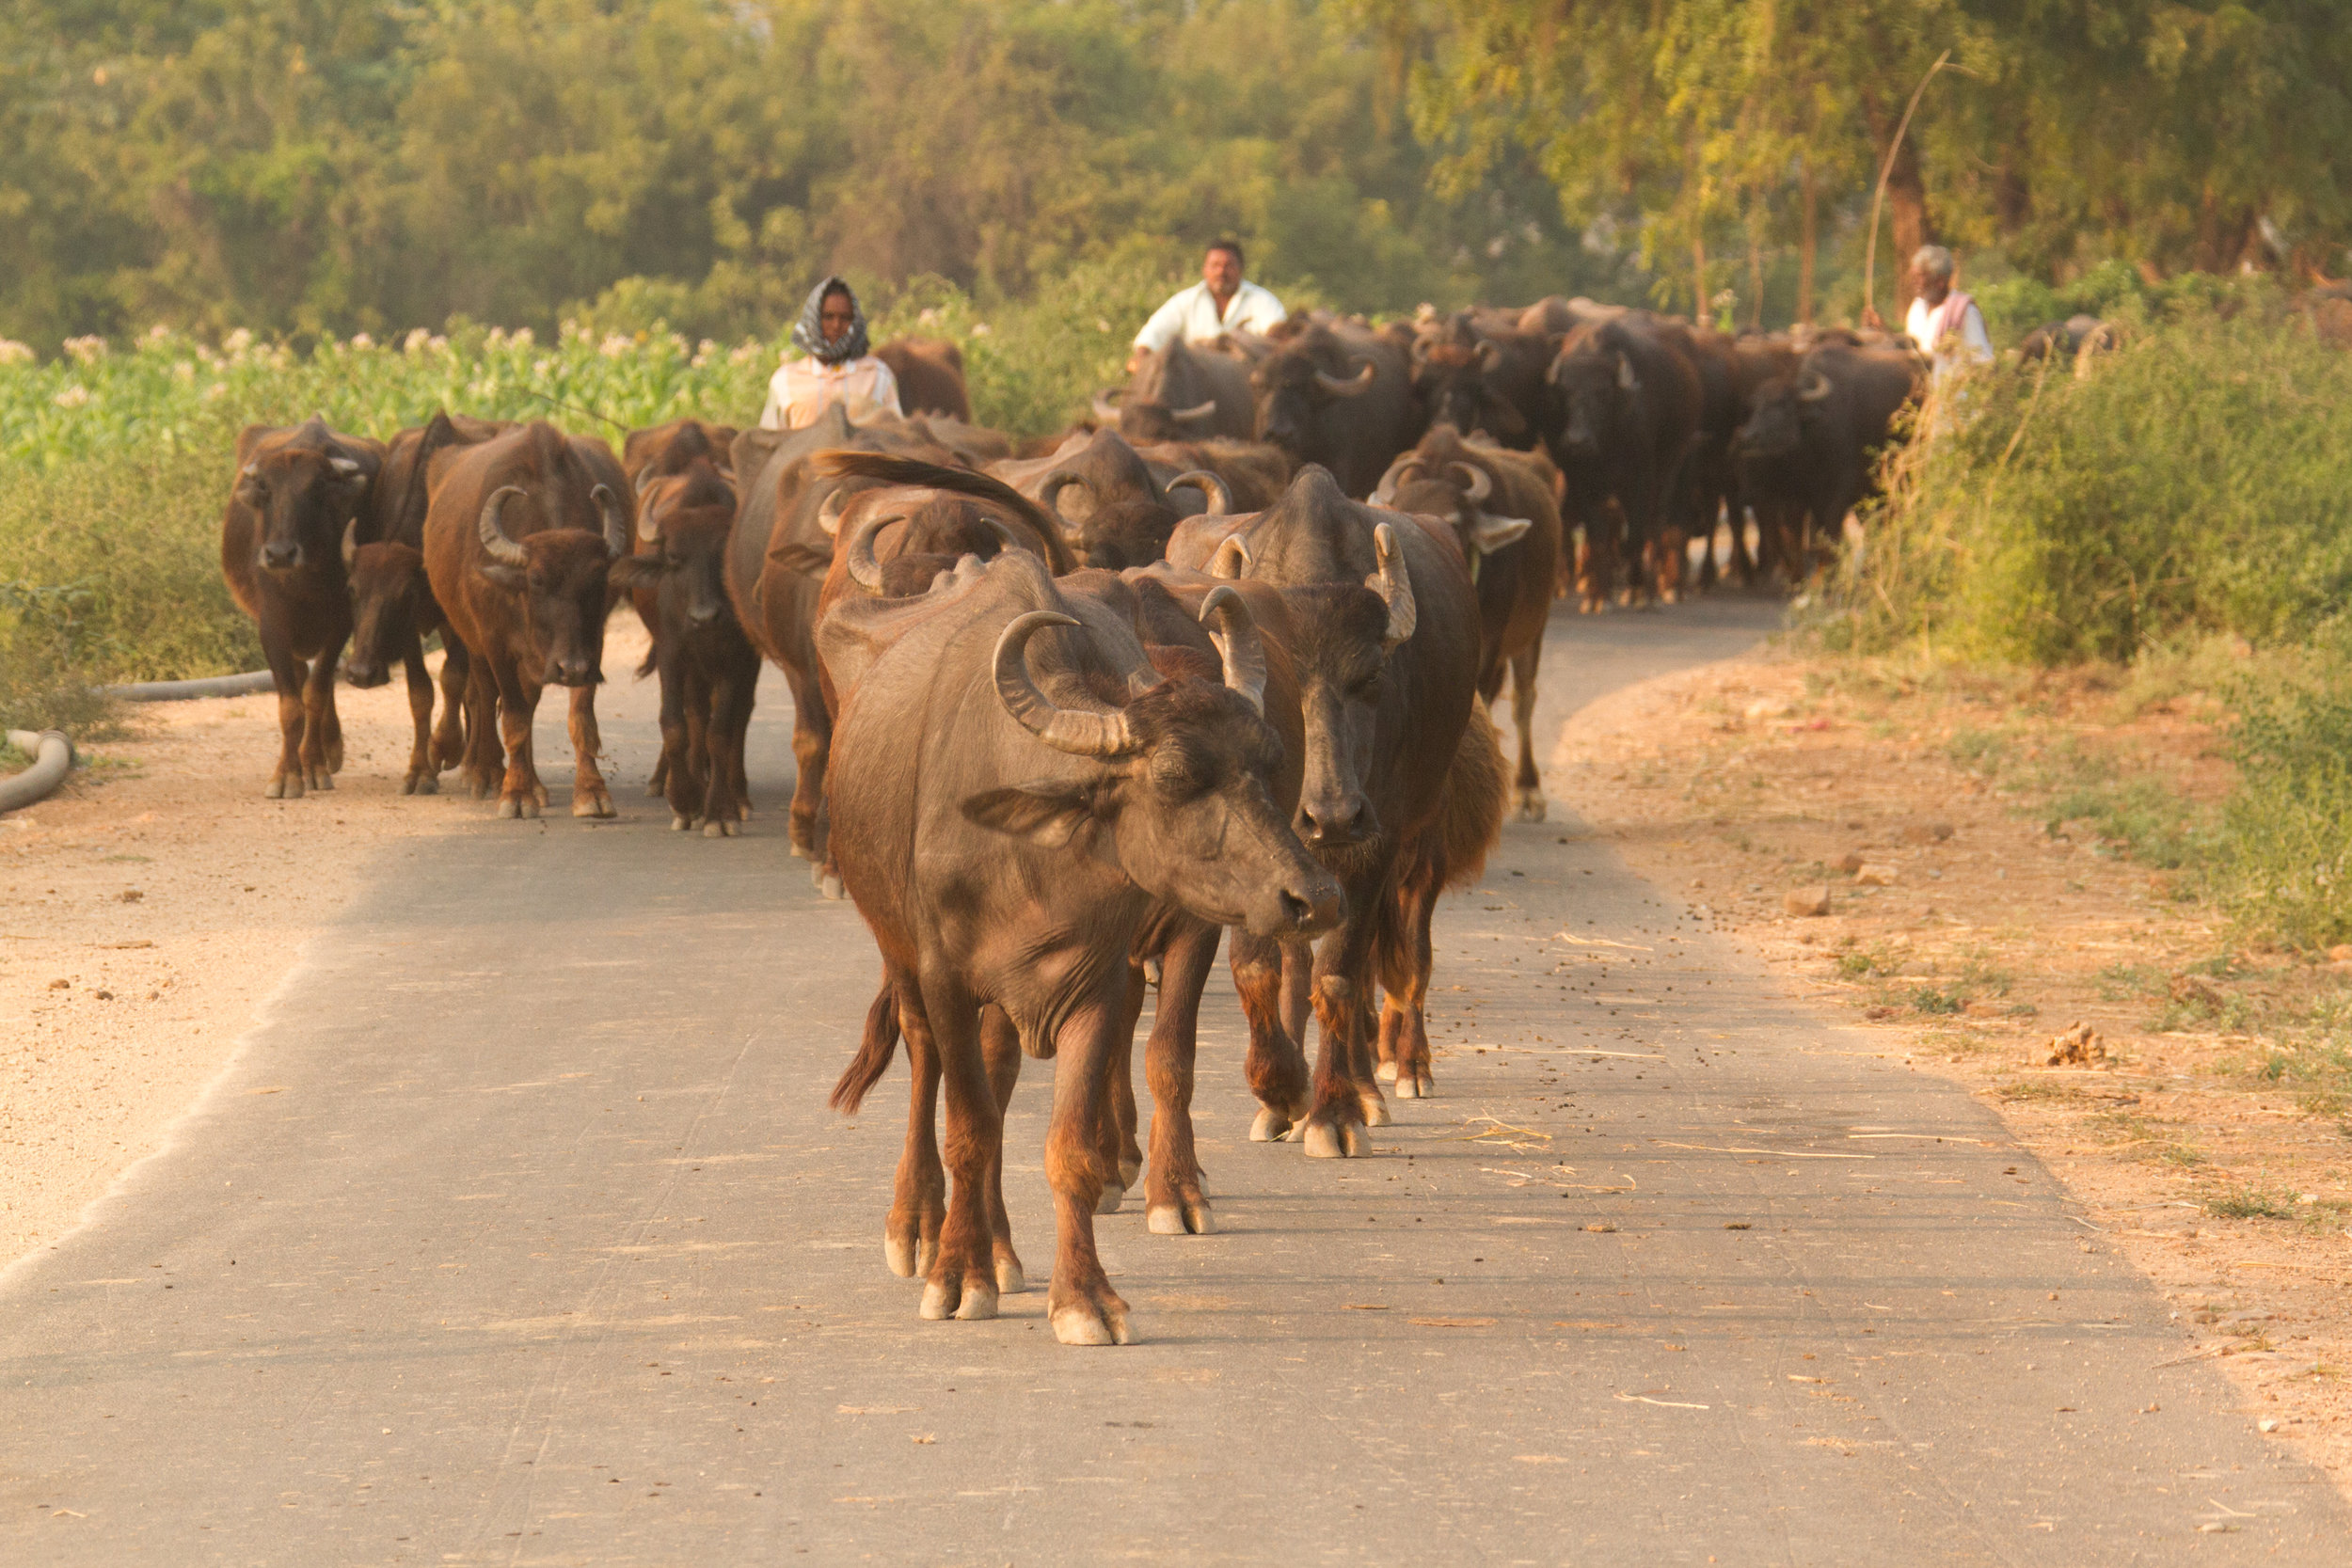 Water buffalo on the highway.